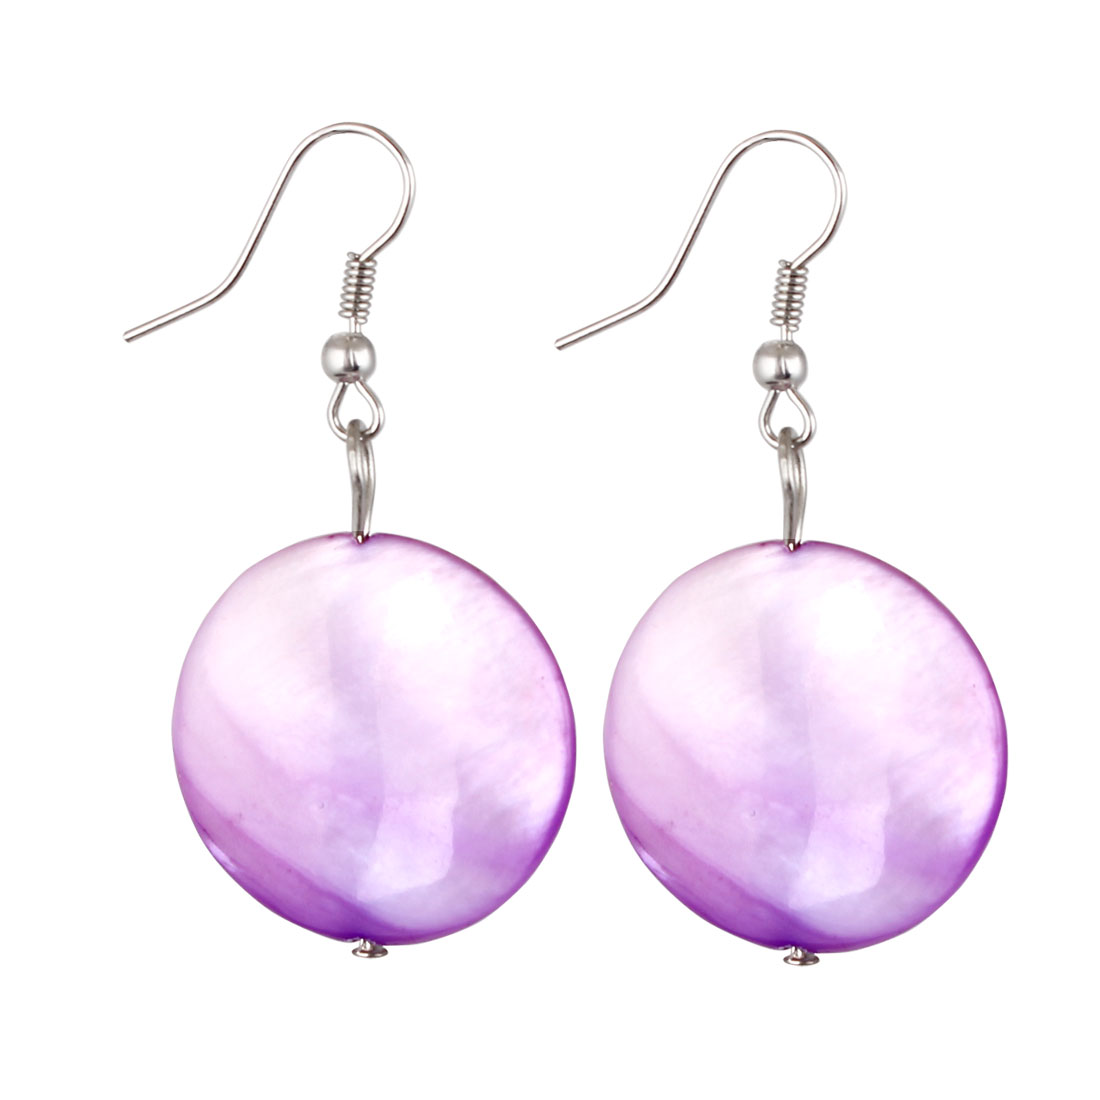 Pair Purple Round Sea Shell Pendant Dangling Fish Hook Ear Drops Earrings Eardrops